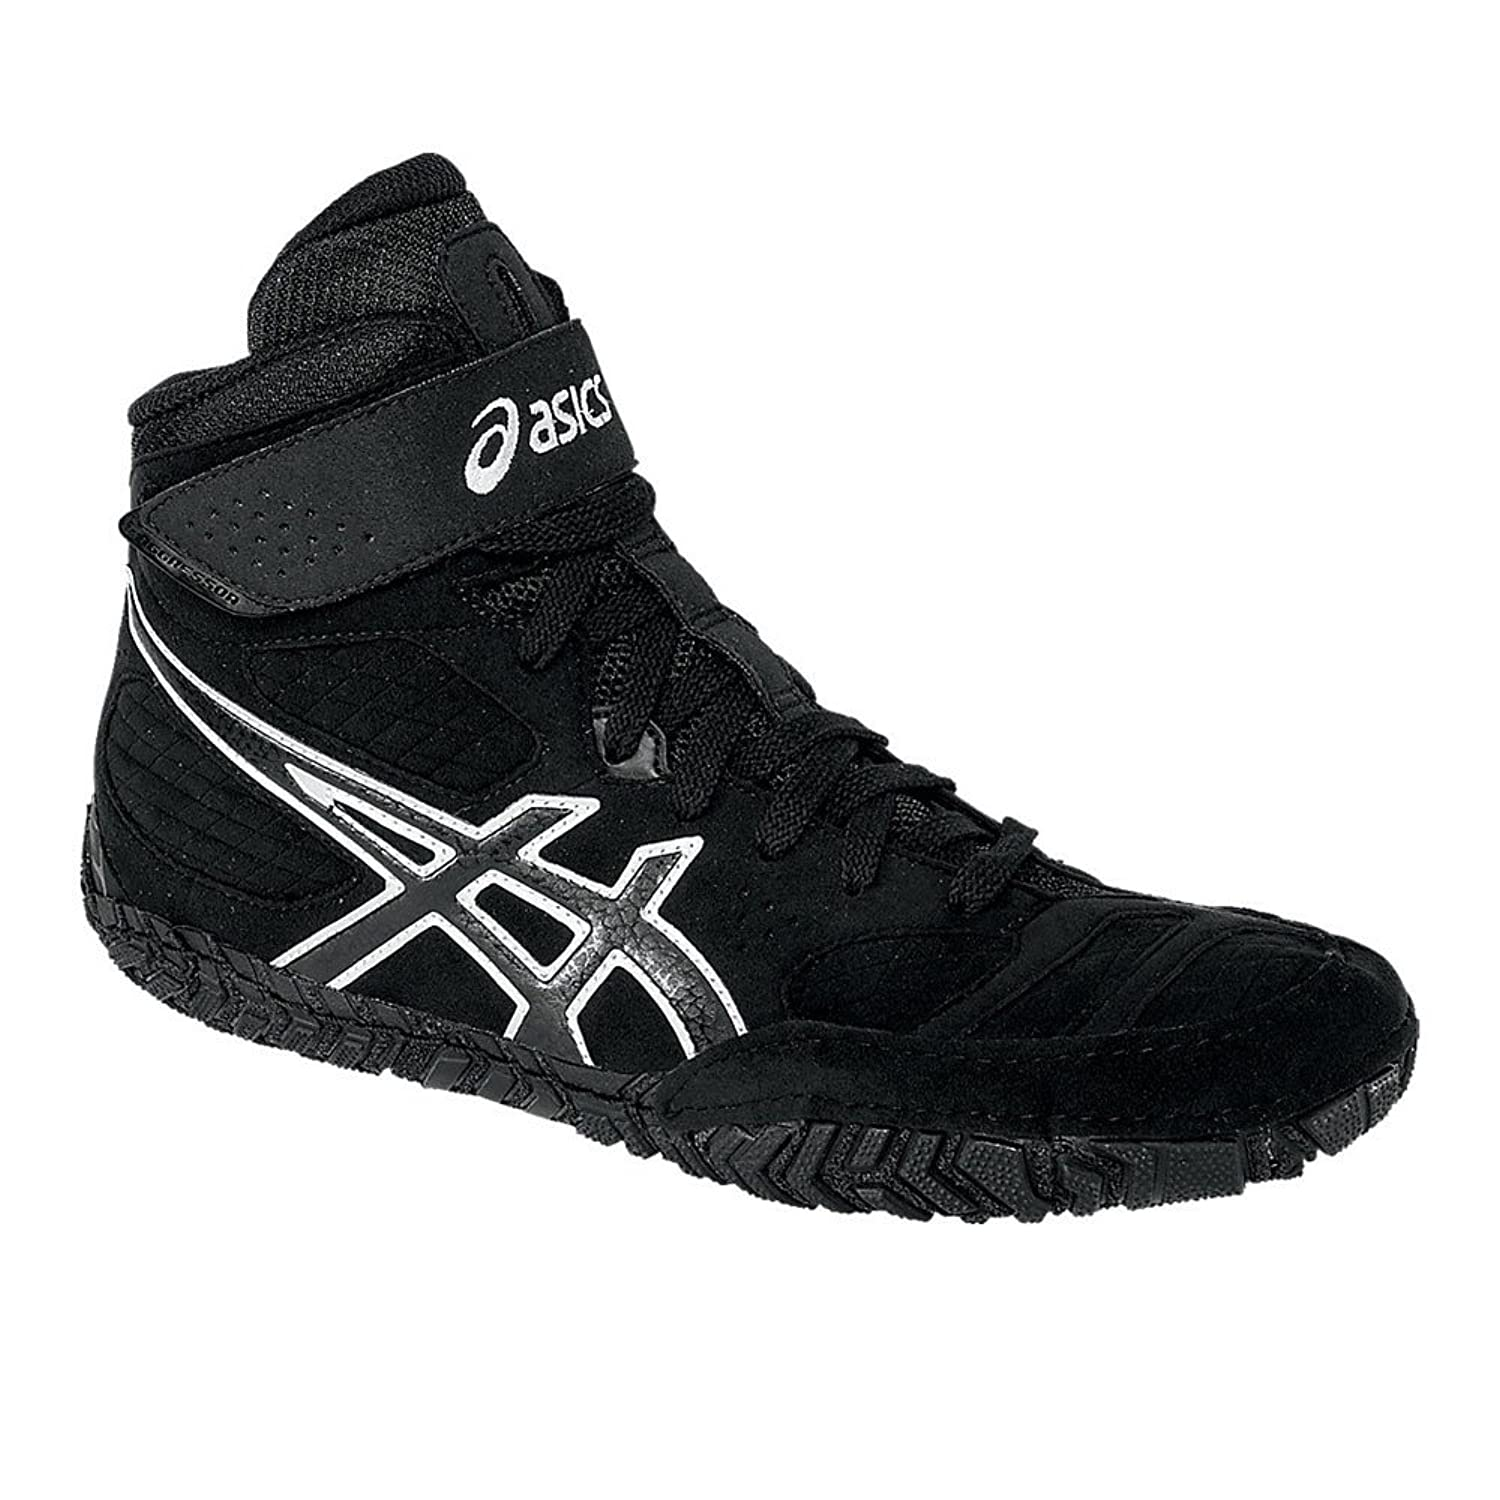 aed874ce1c1 Asics Aggressor 2 Wrestling Shoes  Amazon.co.uk  Shoes   Bags